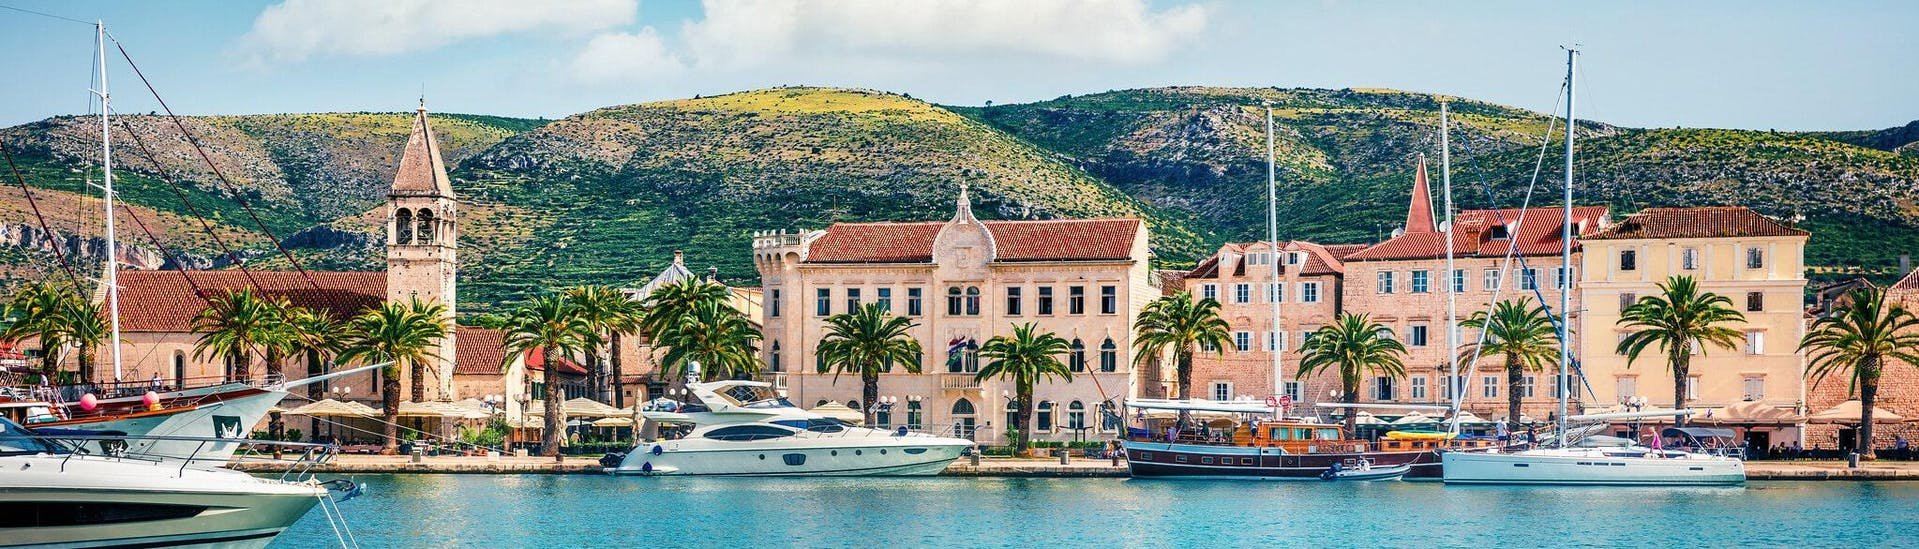 View of the port of Trogir, which is a popular starting point for boat trips in Dalmatia.